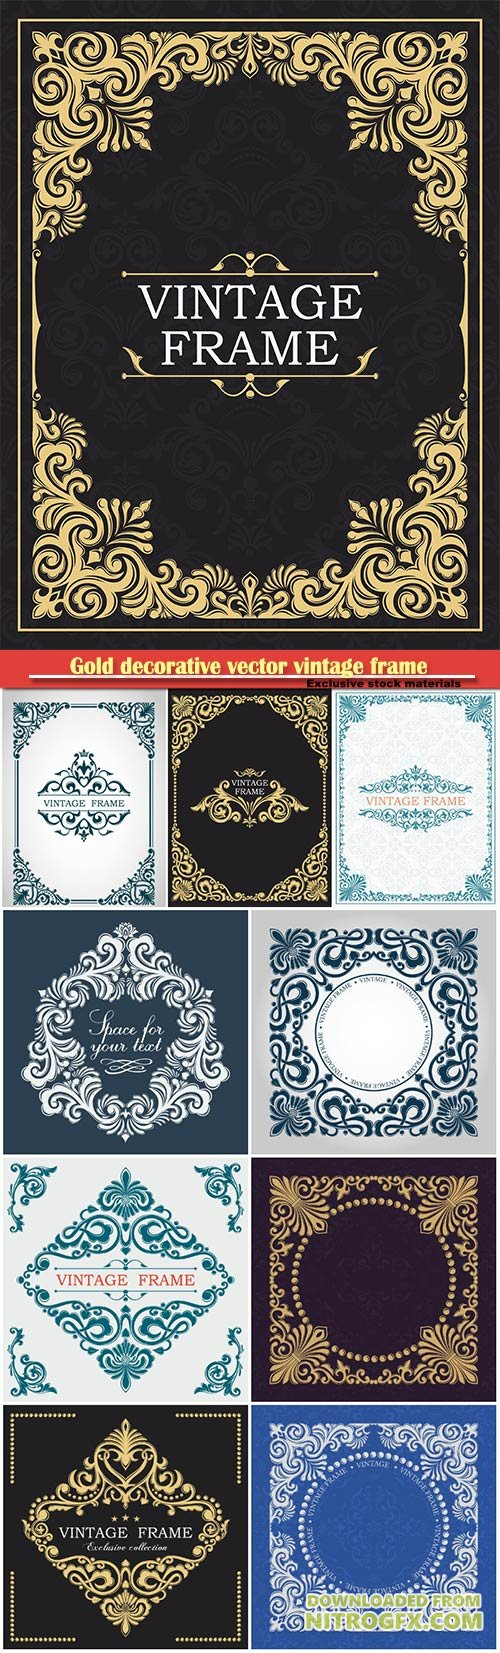 Gold decorative vector vintage frame, monogram, luxurious template